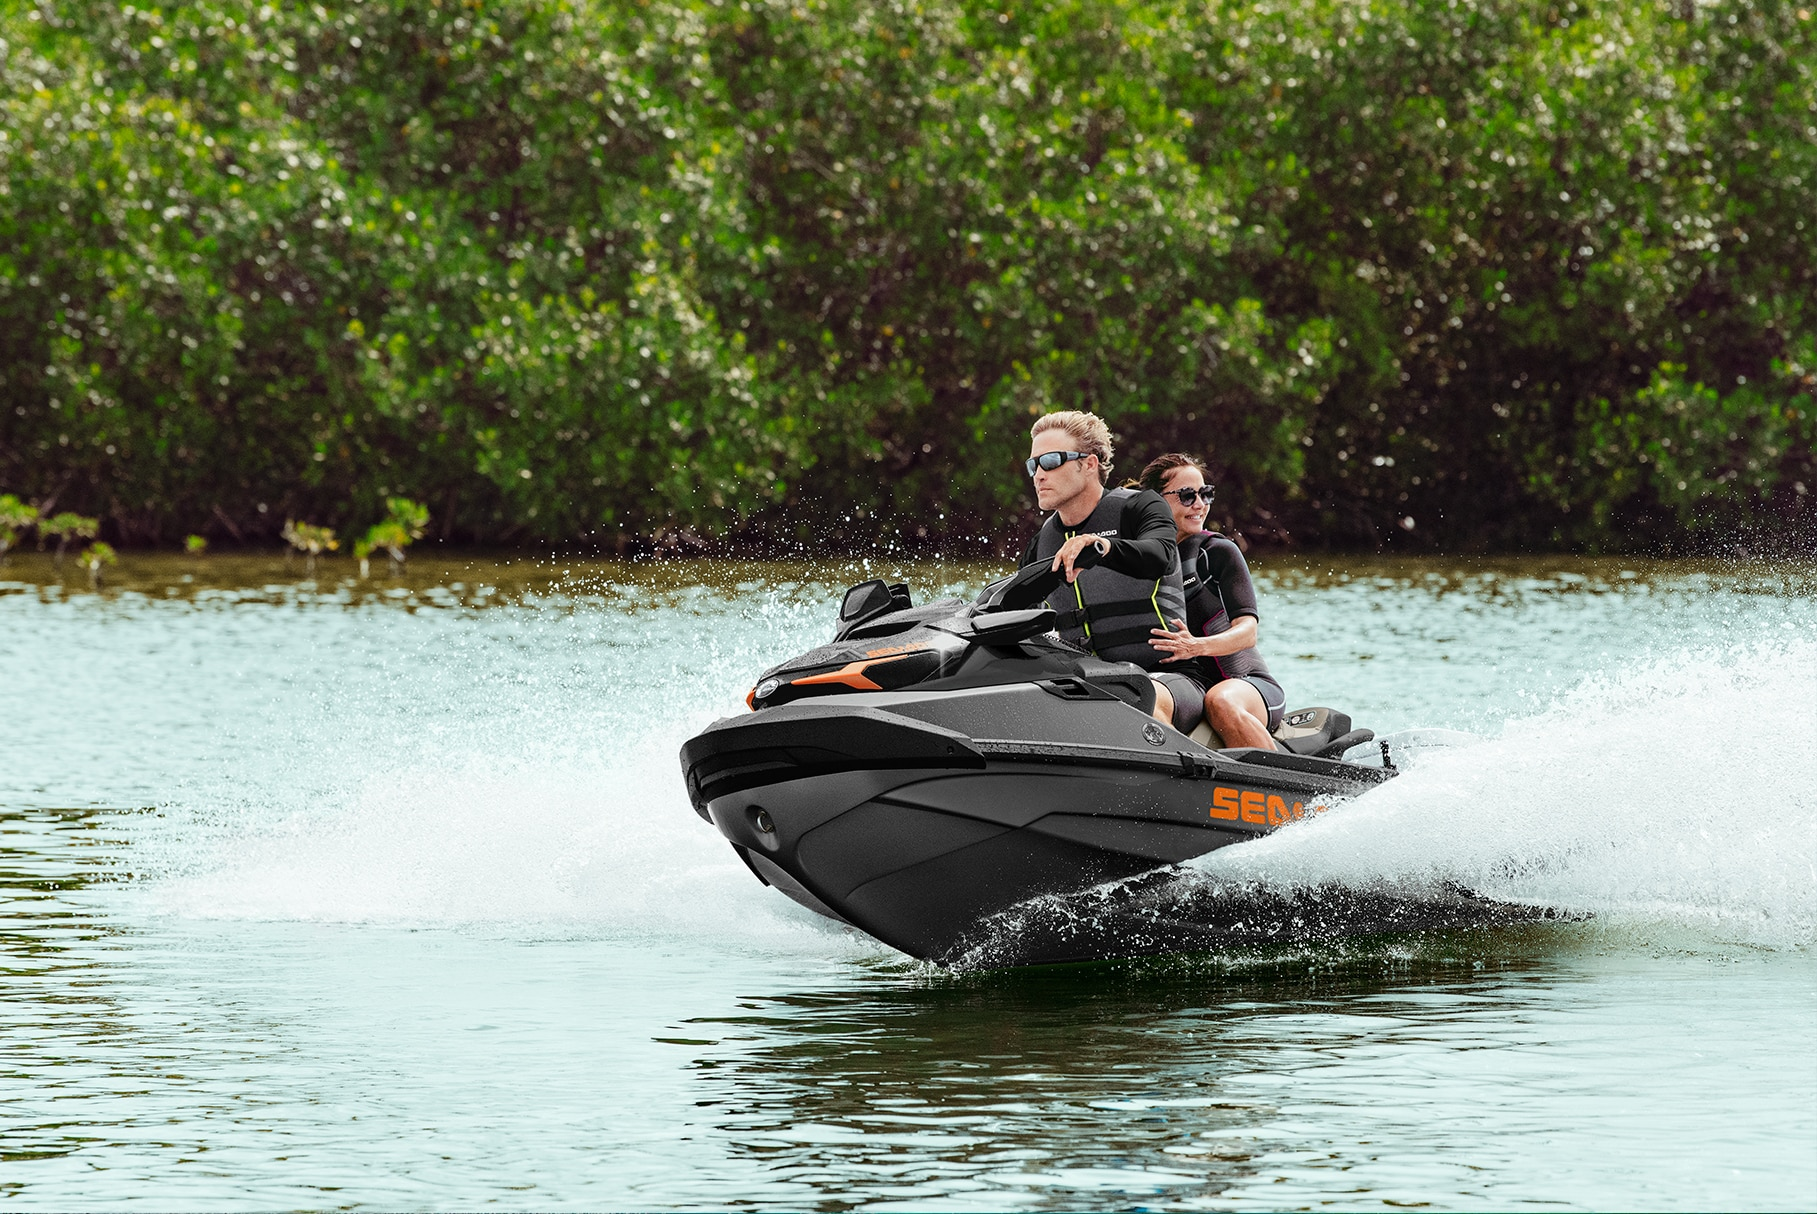 Couple enjoying their ride on a Sea-Doo